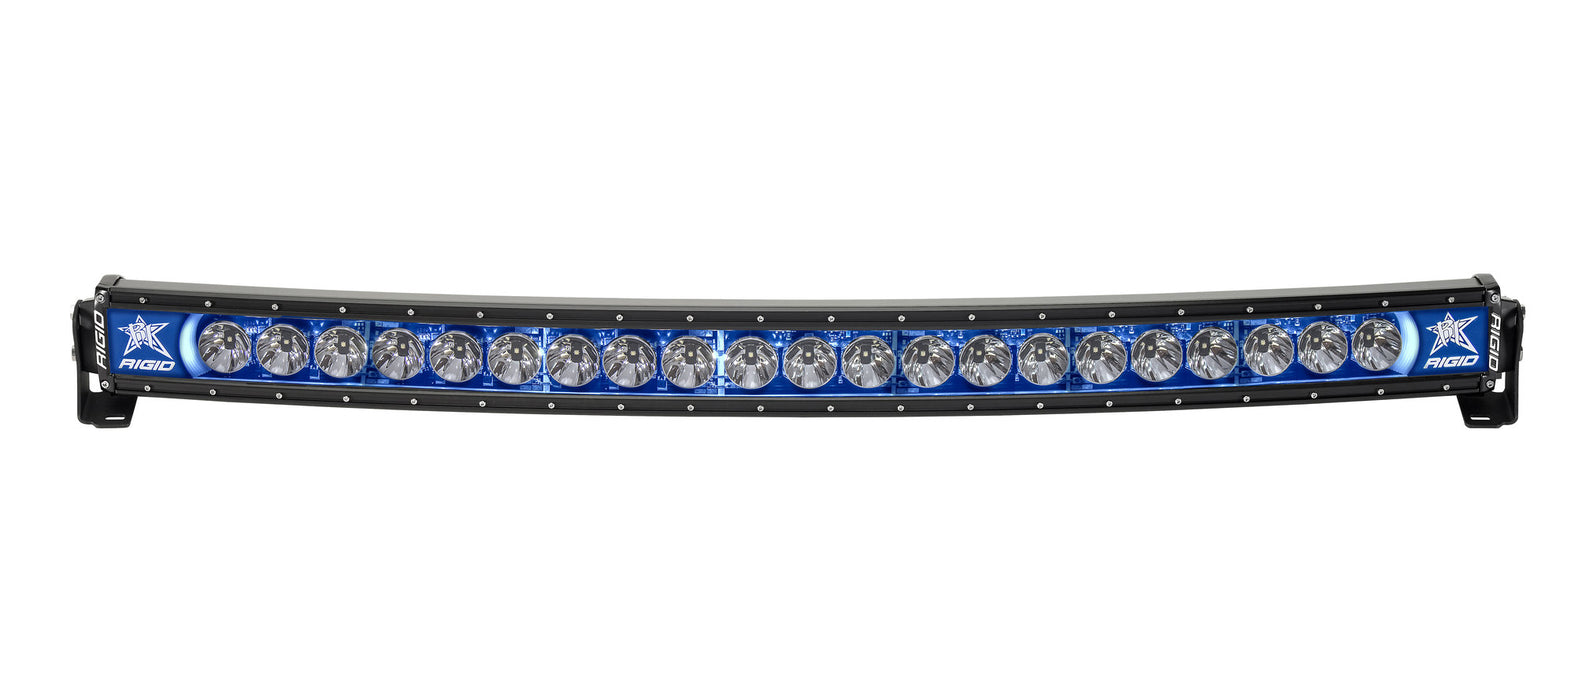 "Rigid Industries Radiance Plus Series Curved 40"" Multi-Color LED Light Bars - Wreckless Motorsports"